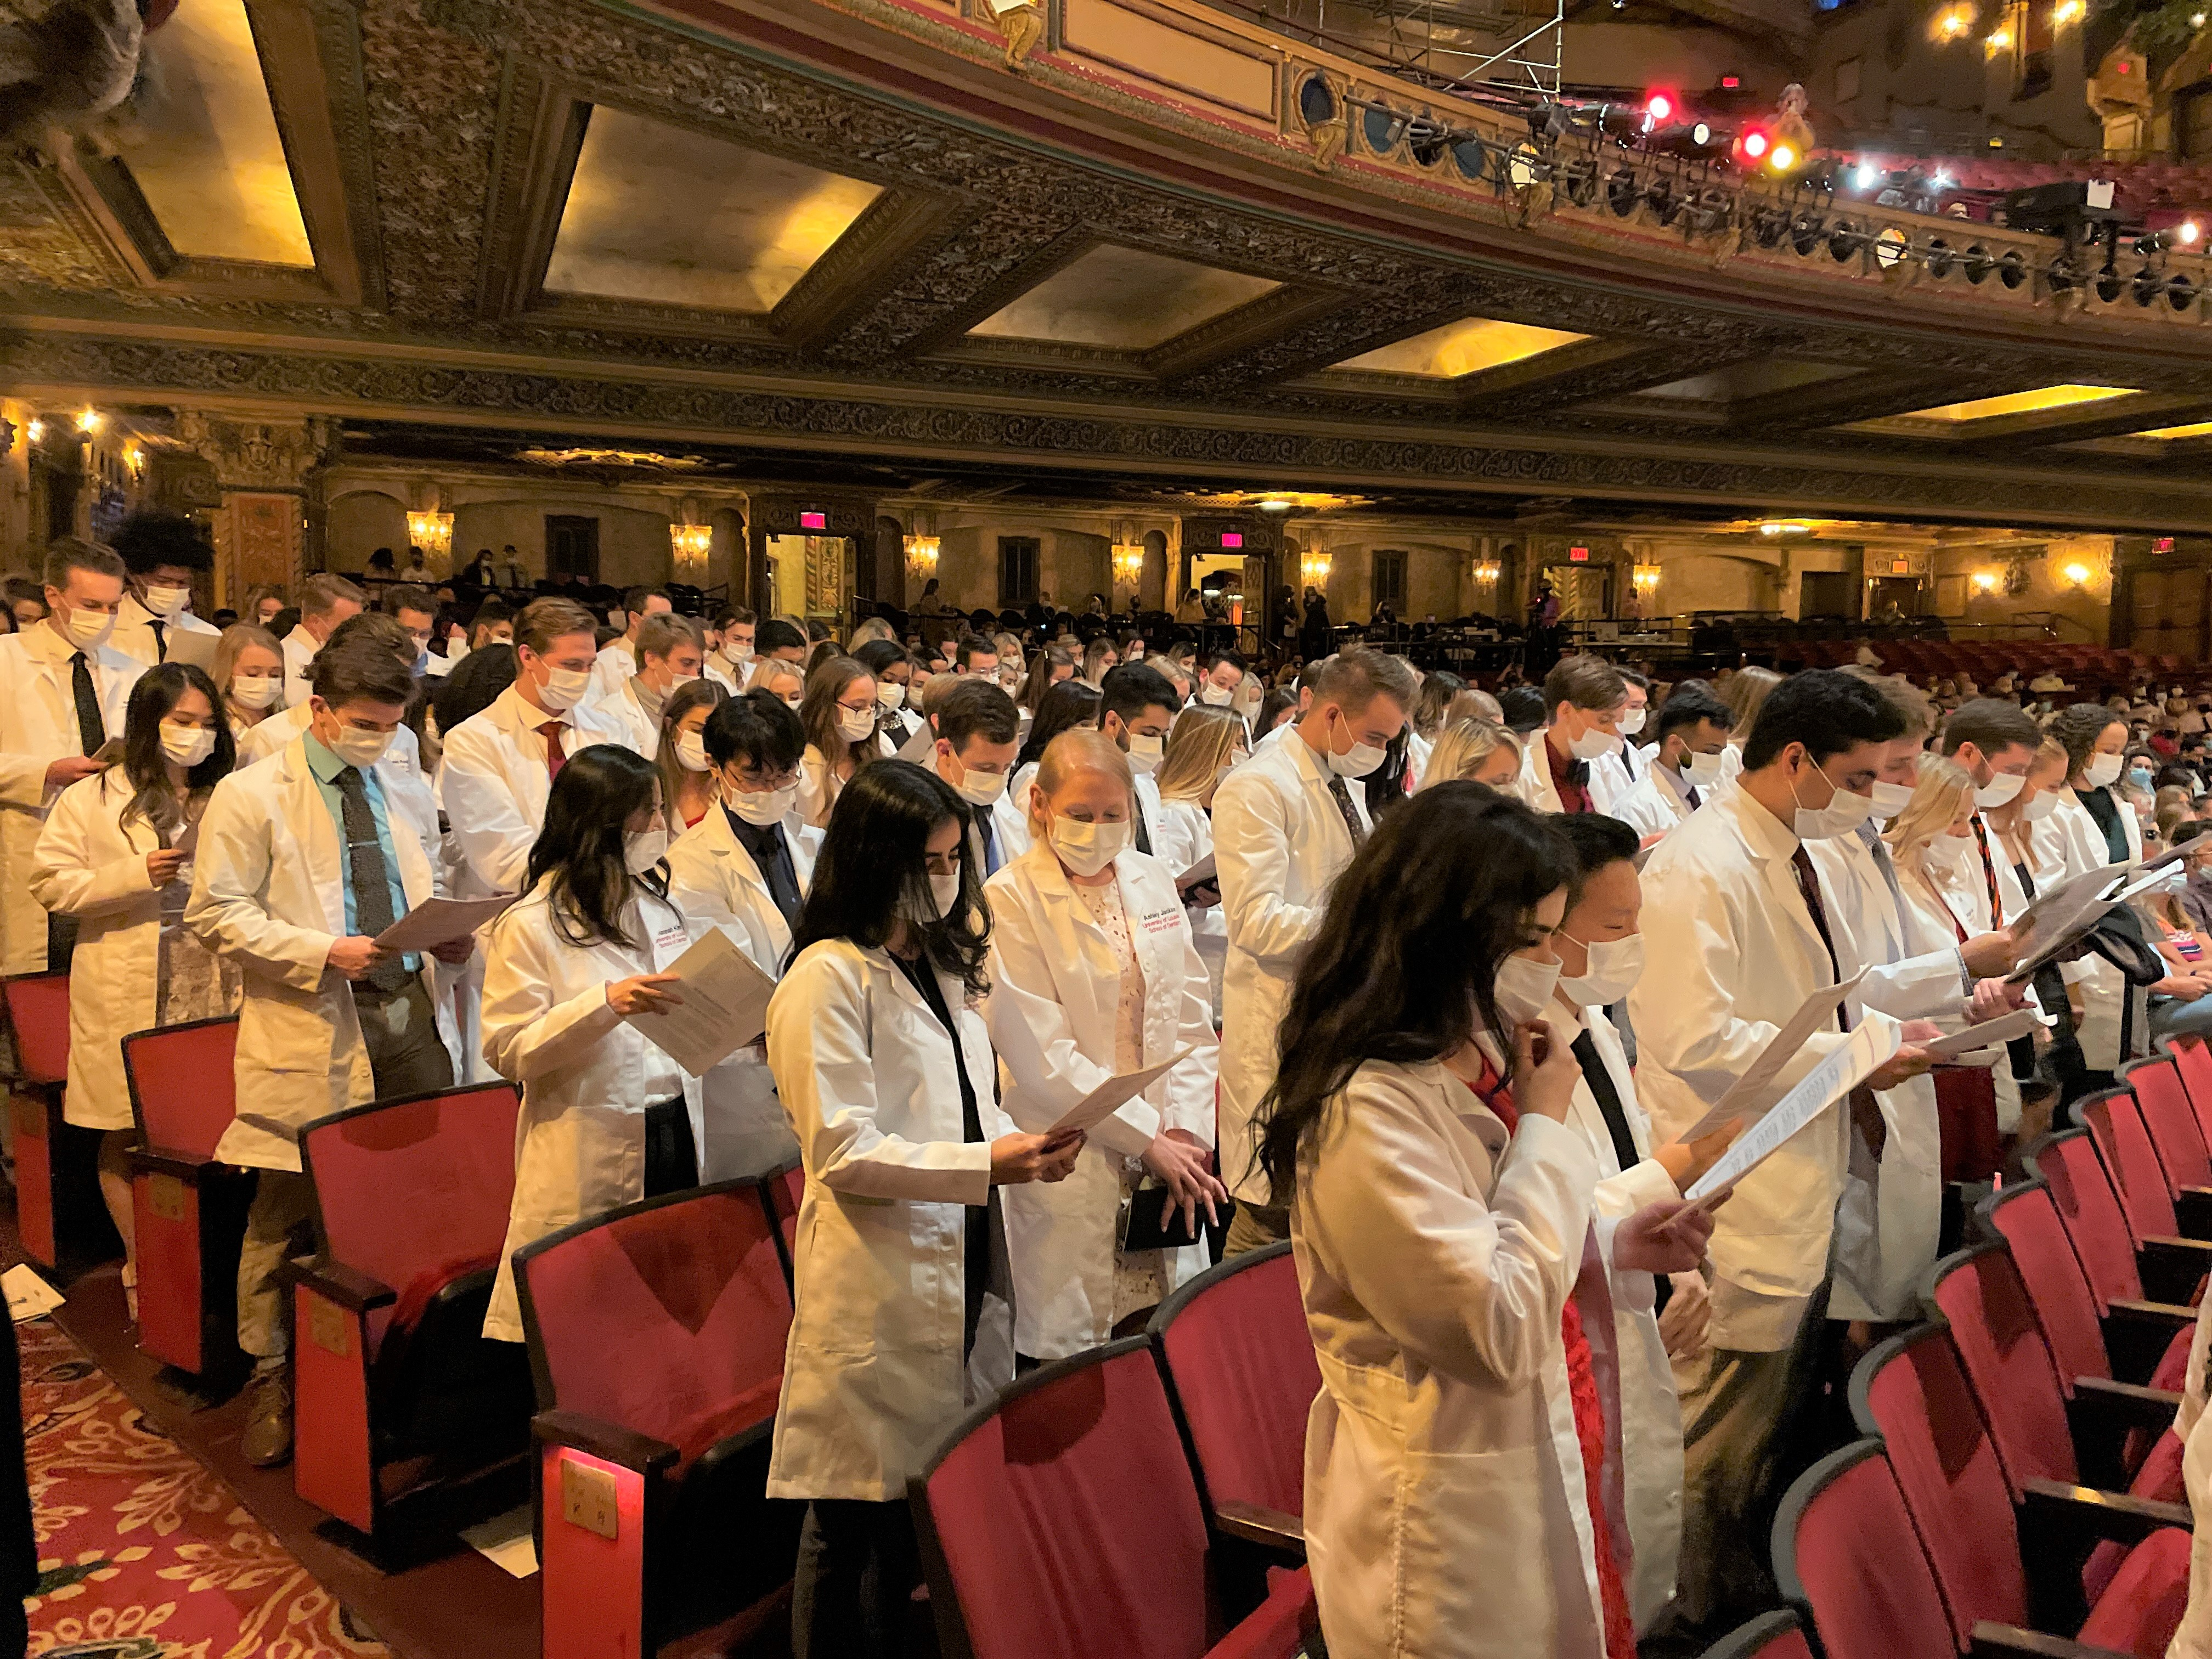 Future dentists and hygienists mark their entry into the profession at White Coat Ceremonies